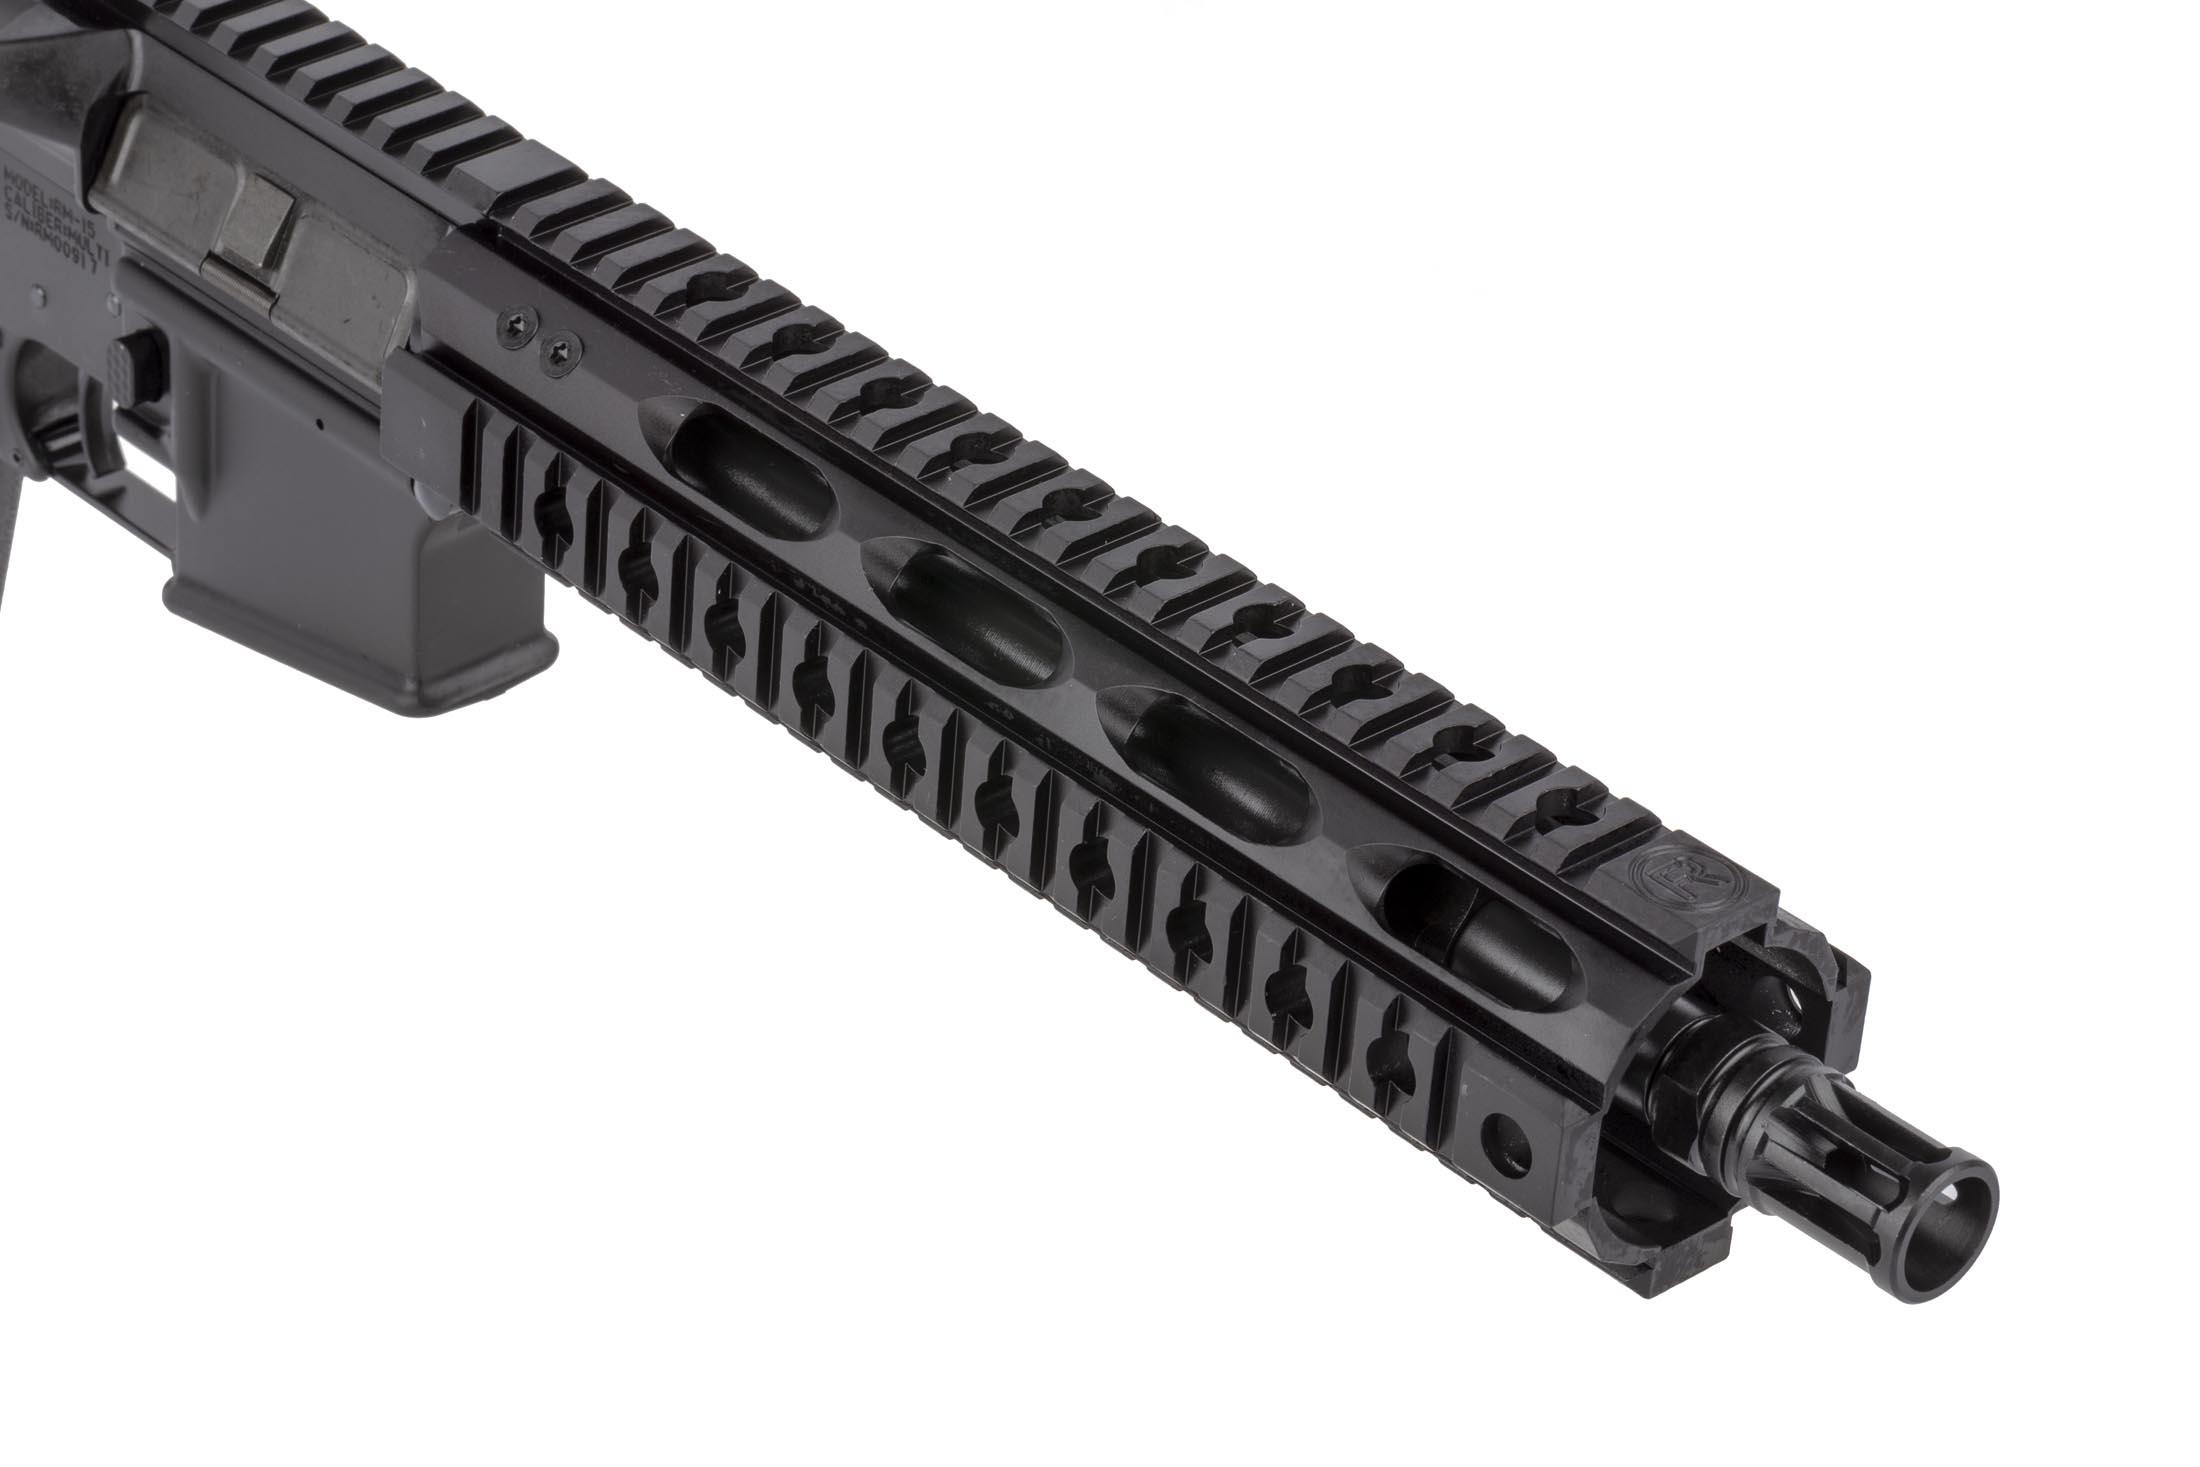 Radical Firearms 10.5in 5.56 NATO AR pistol is threaded 1/2z28 and topped with an effective .223 caliber A2 flash hider.